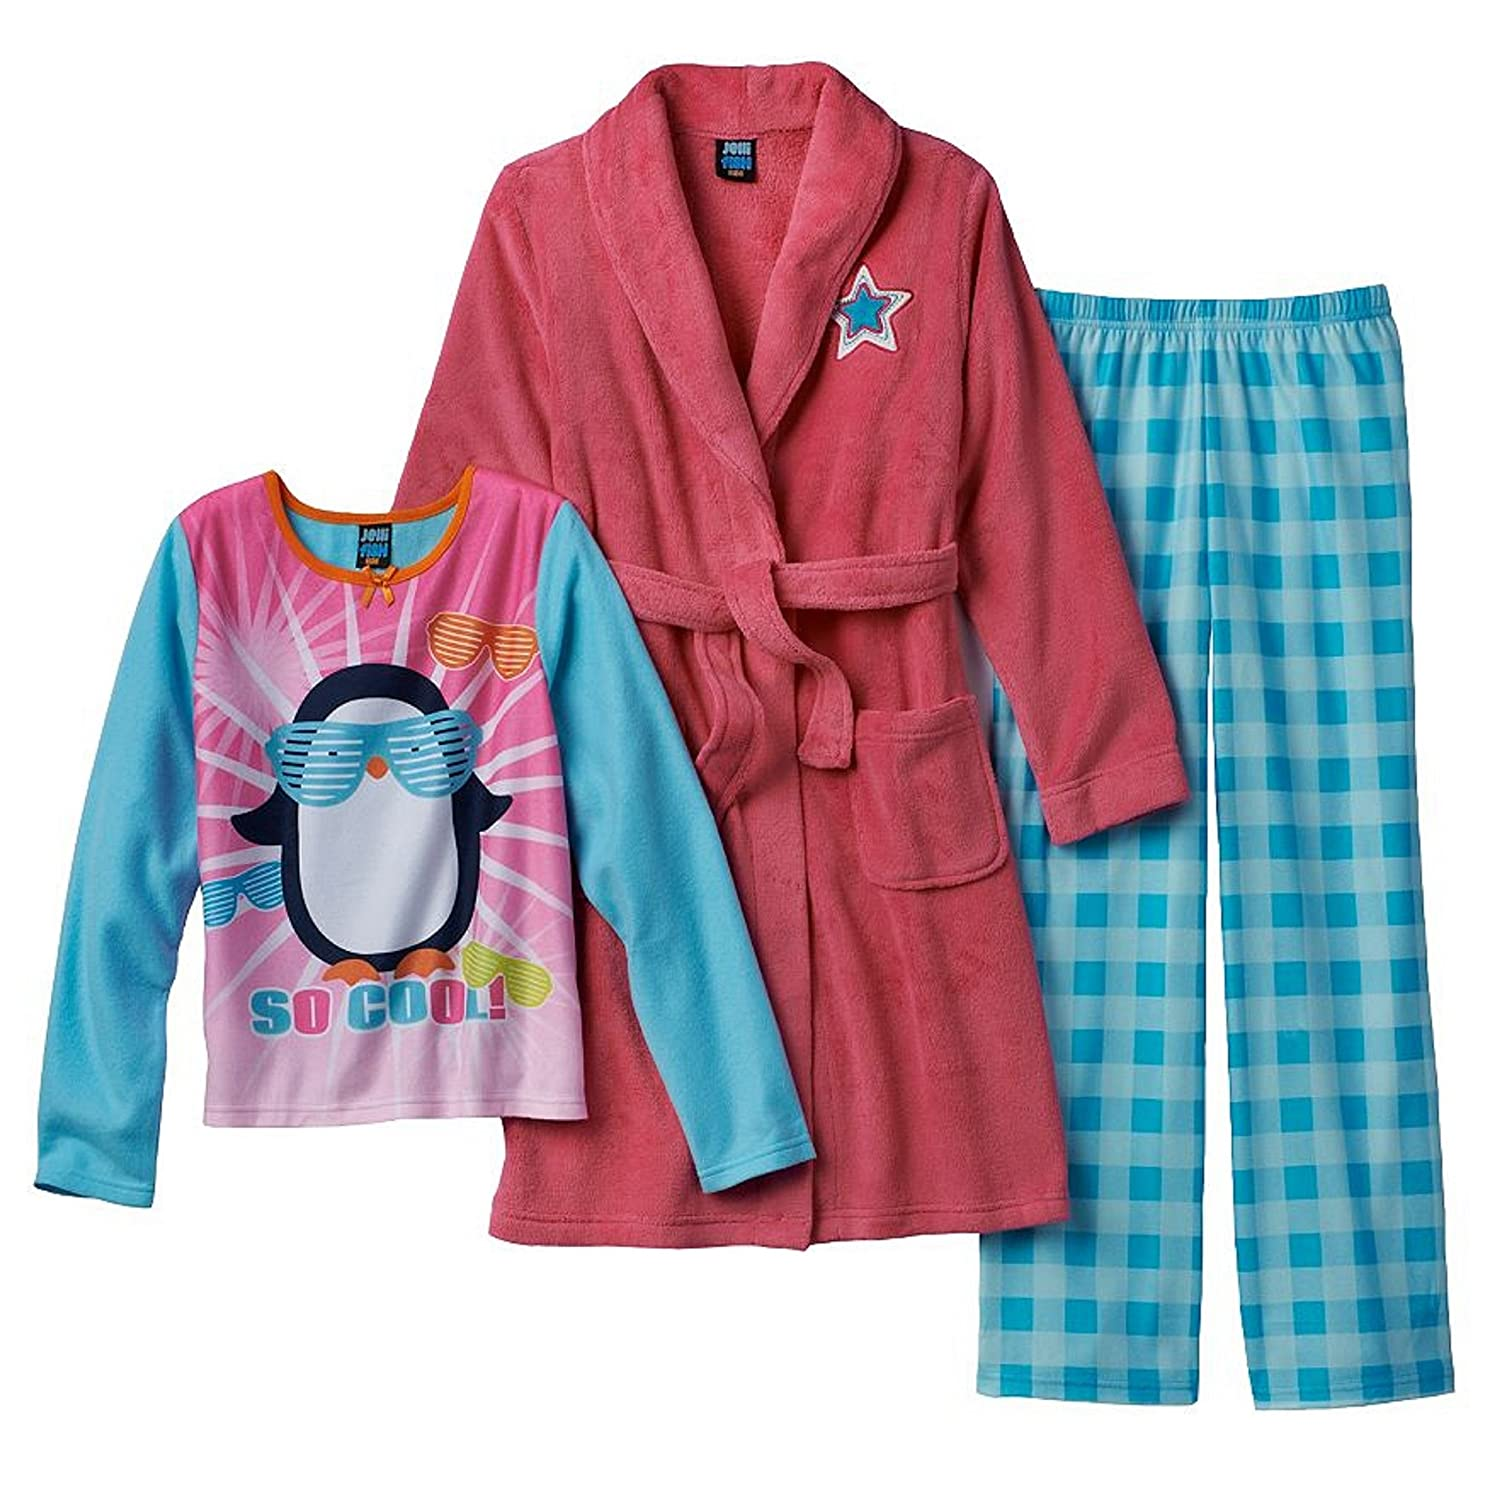 4//5 Jellifish Kids Jelli Fish Kids Puppy Pajamas /& Robe Set Pink Girls